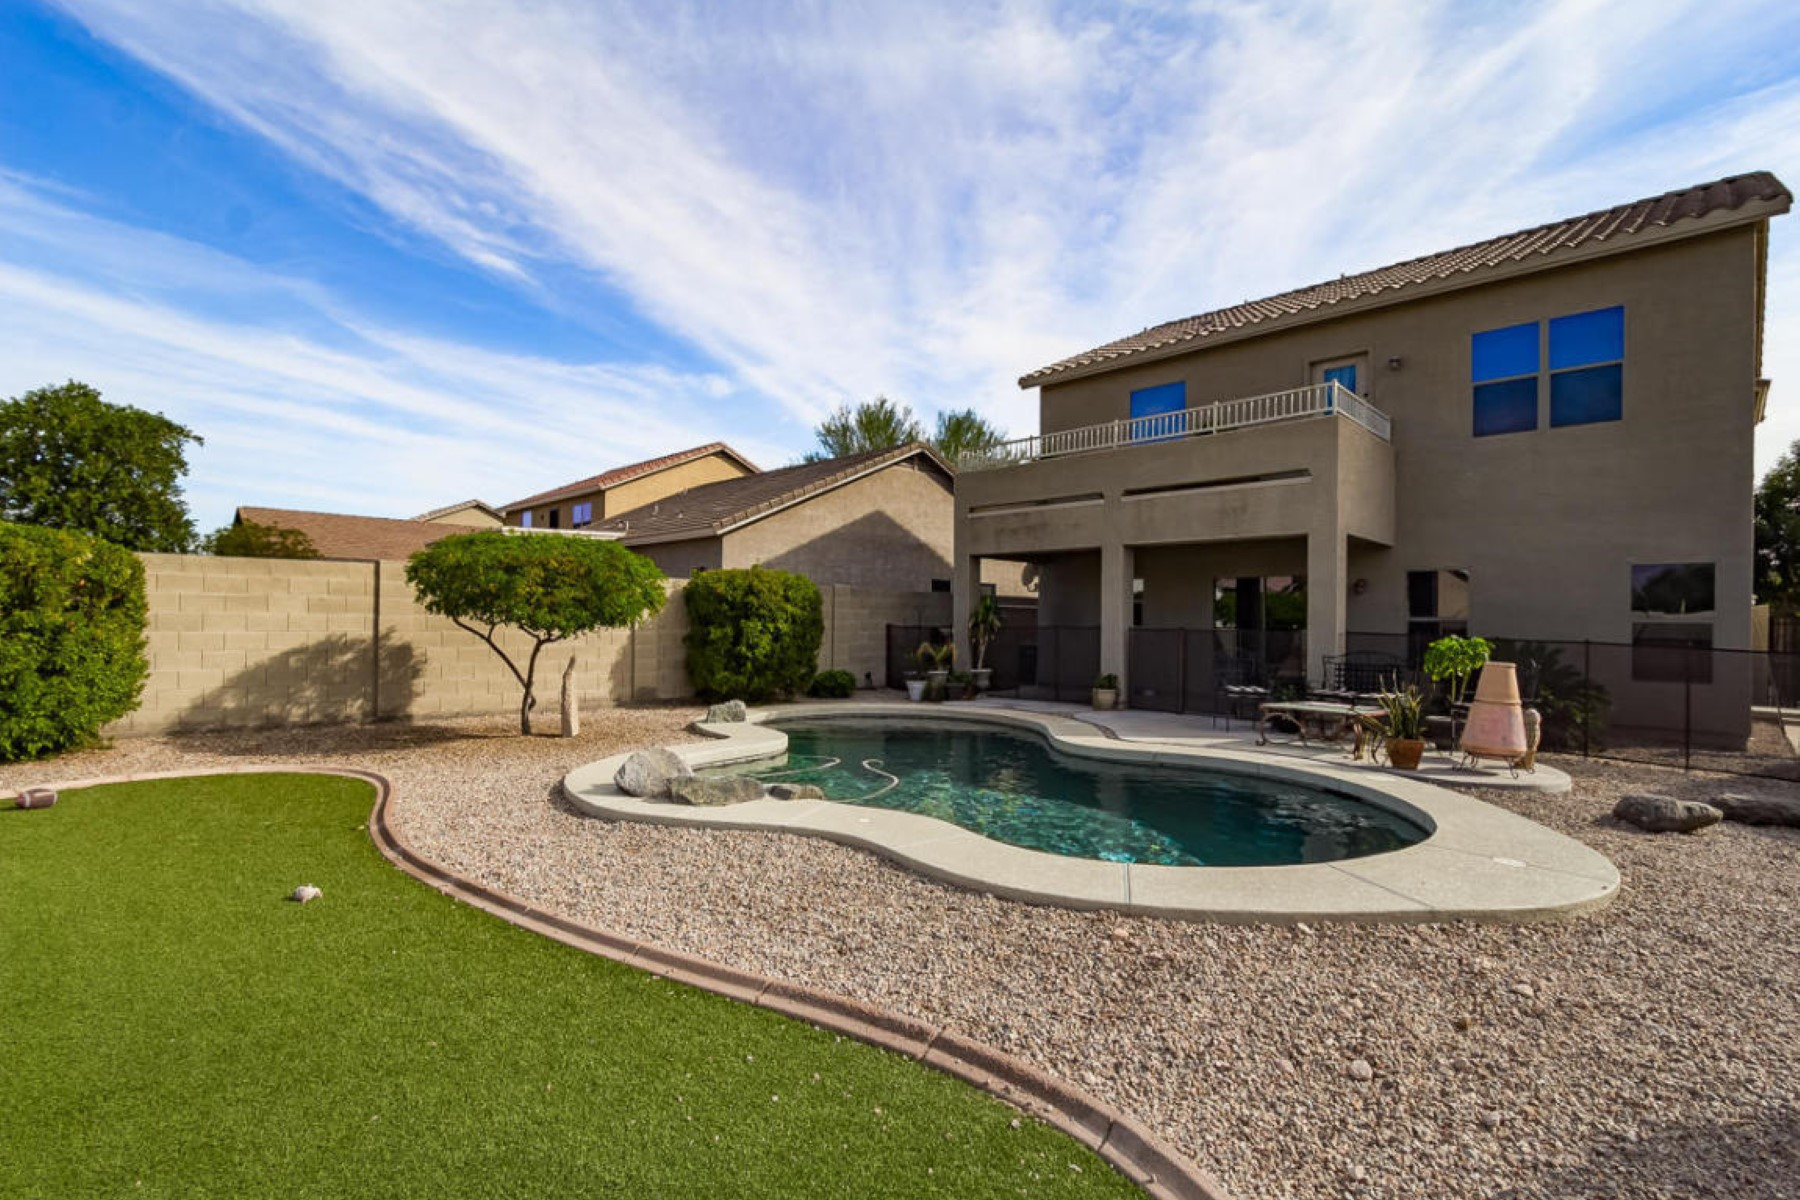 Maison unifamiliale pour l Vente à Beautiful two story home nestled b Superstition Mountain 18150 E El Viejo Desierto Gold Canyon, Arizona 85118 États-Unis